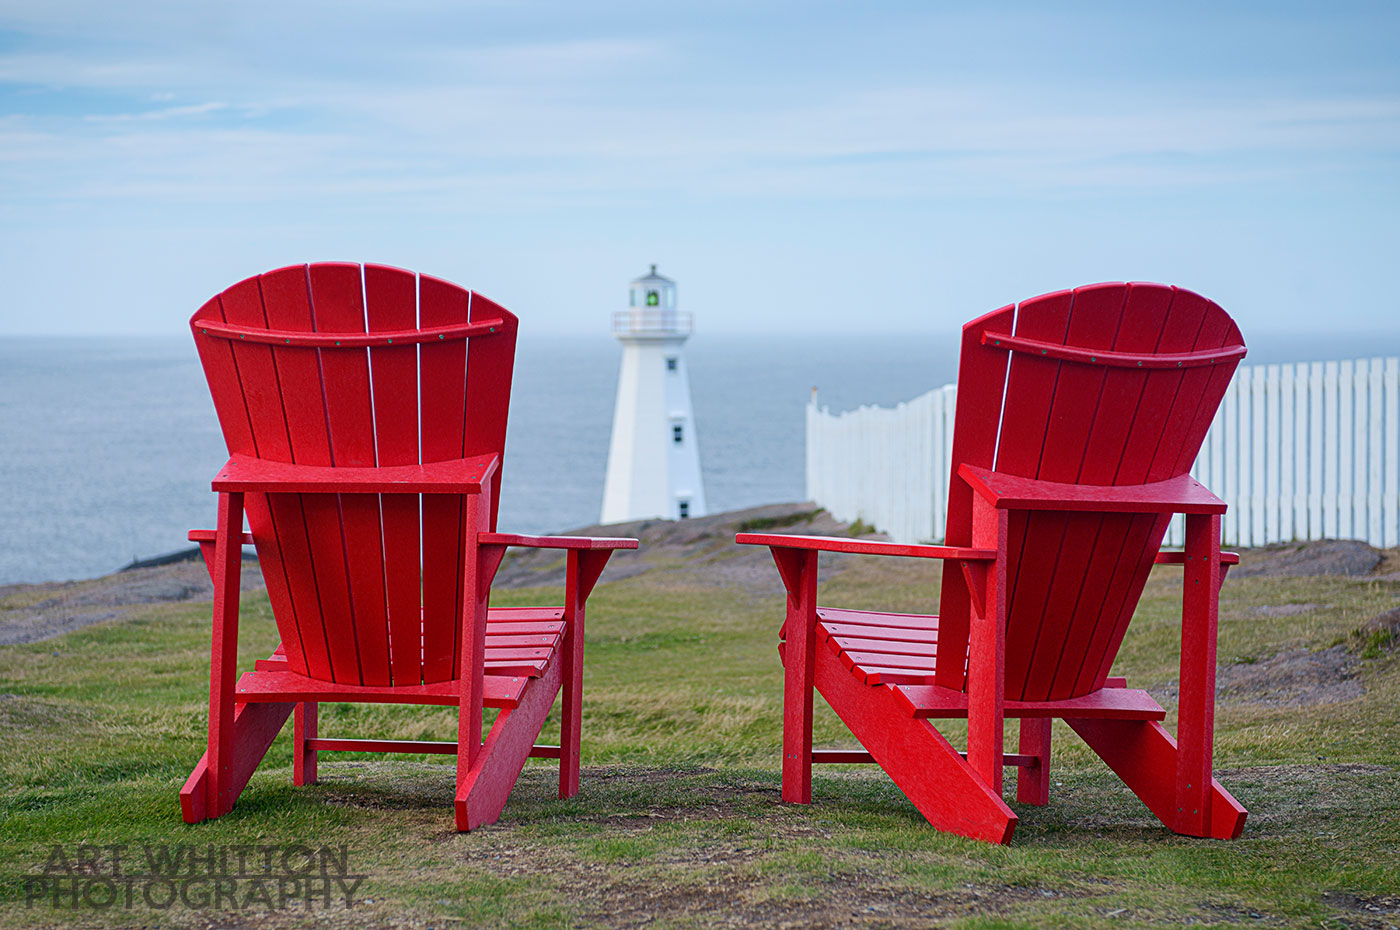 Cape-Spear-red-chairs-1400-sig